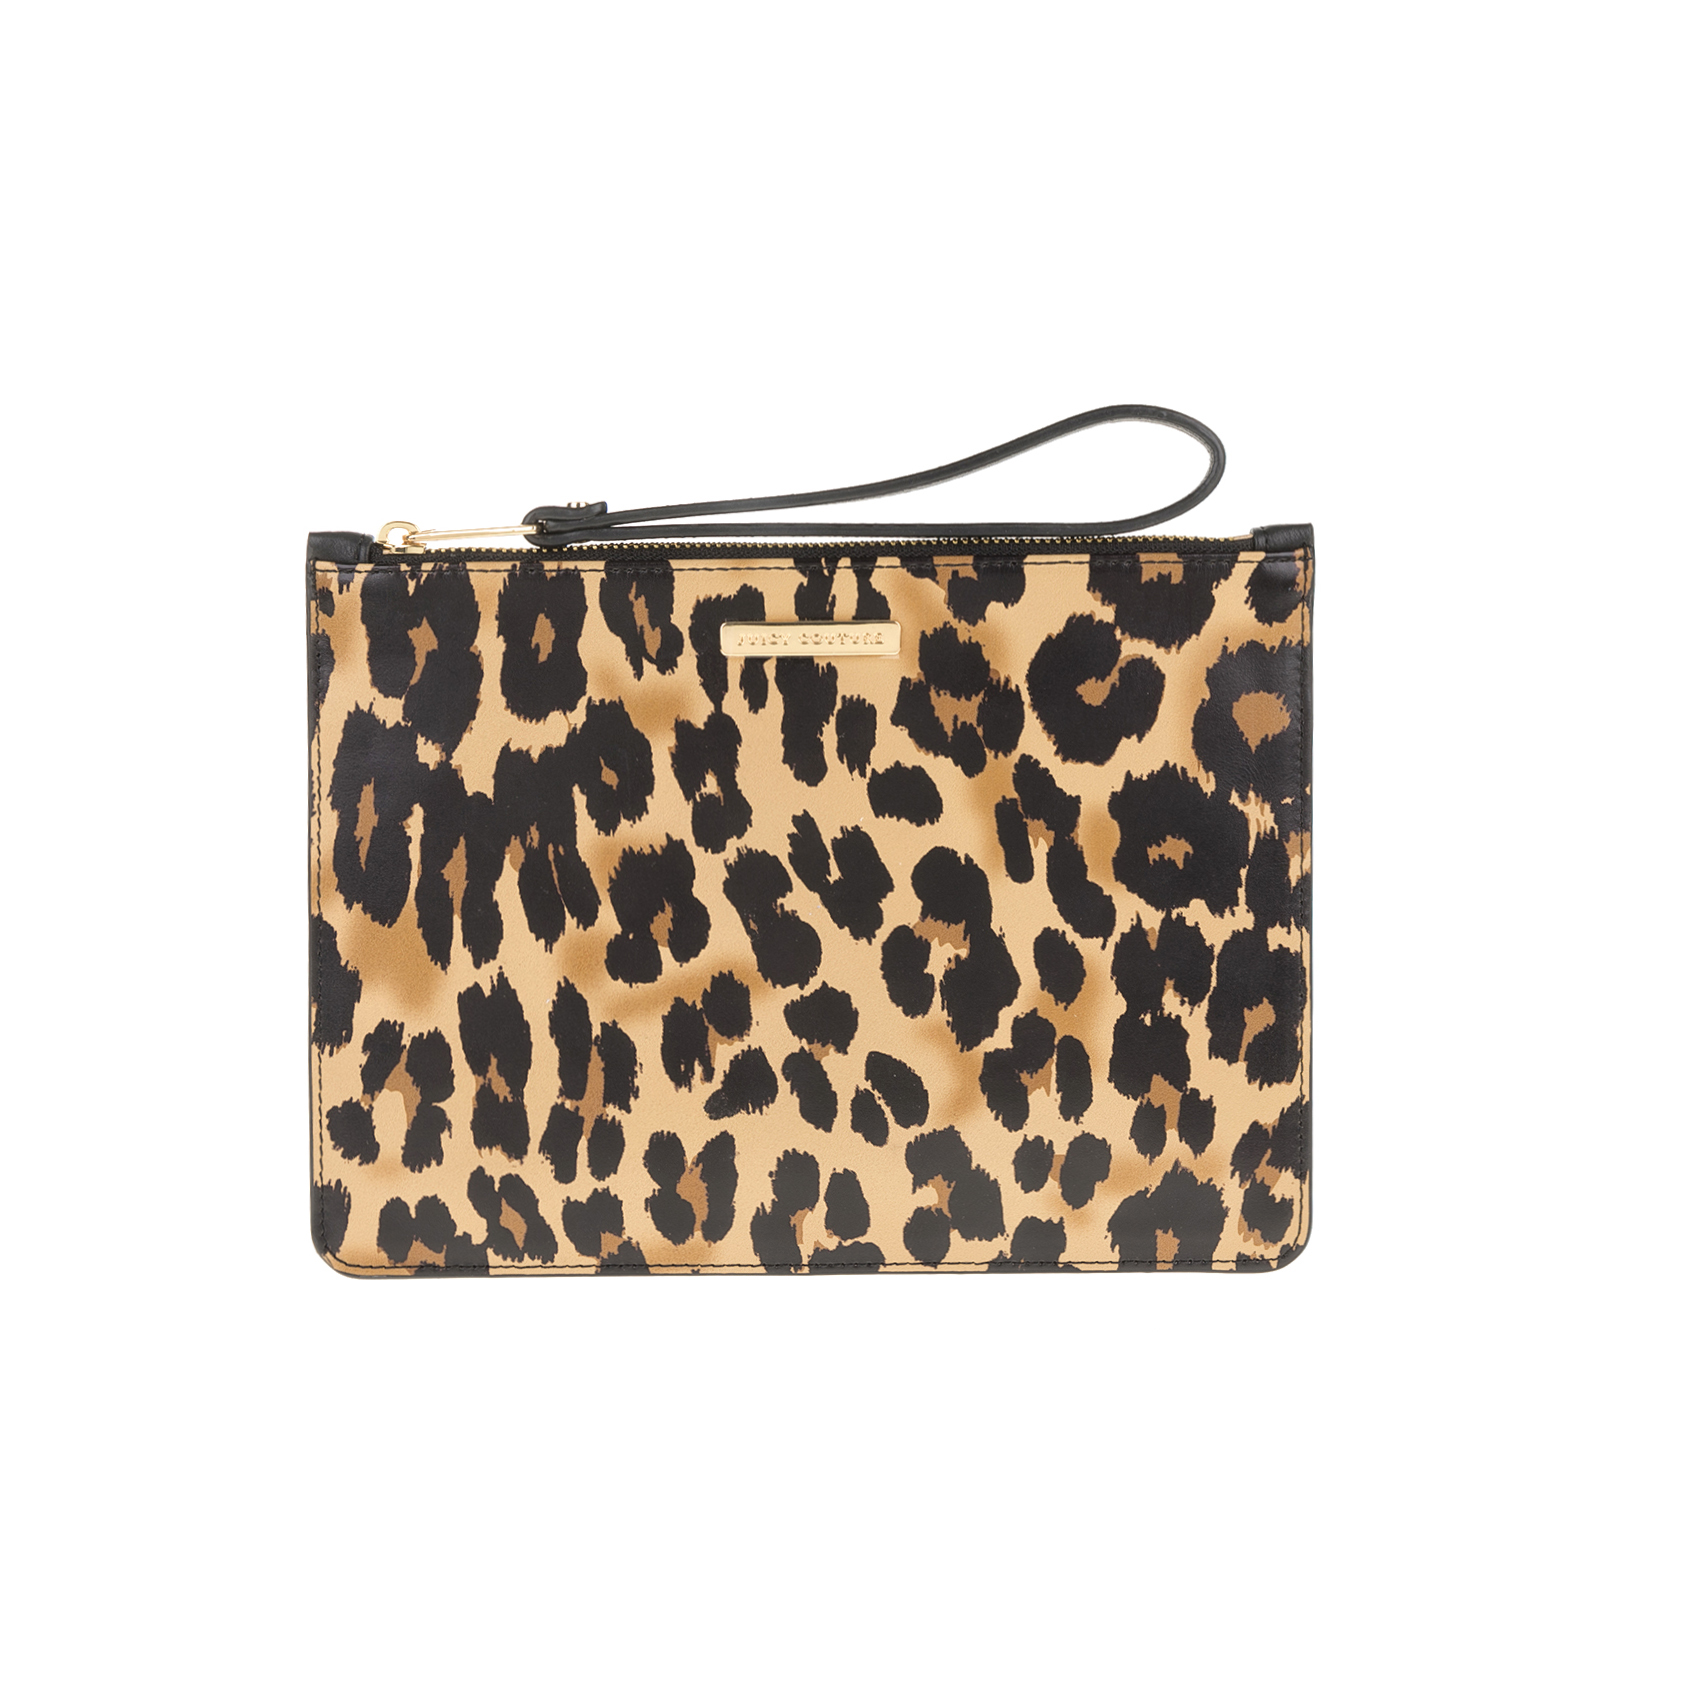 JUICY COUTURE - Τσαντάκι-πορτοφόλι JUICY COUTURE ZEPHYR LEOPARD MEDIUM